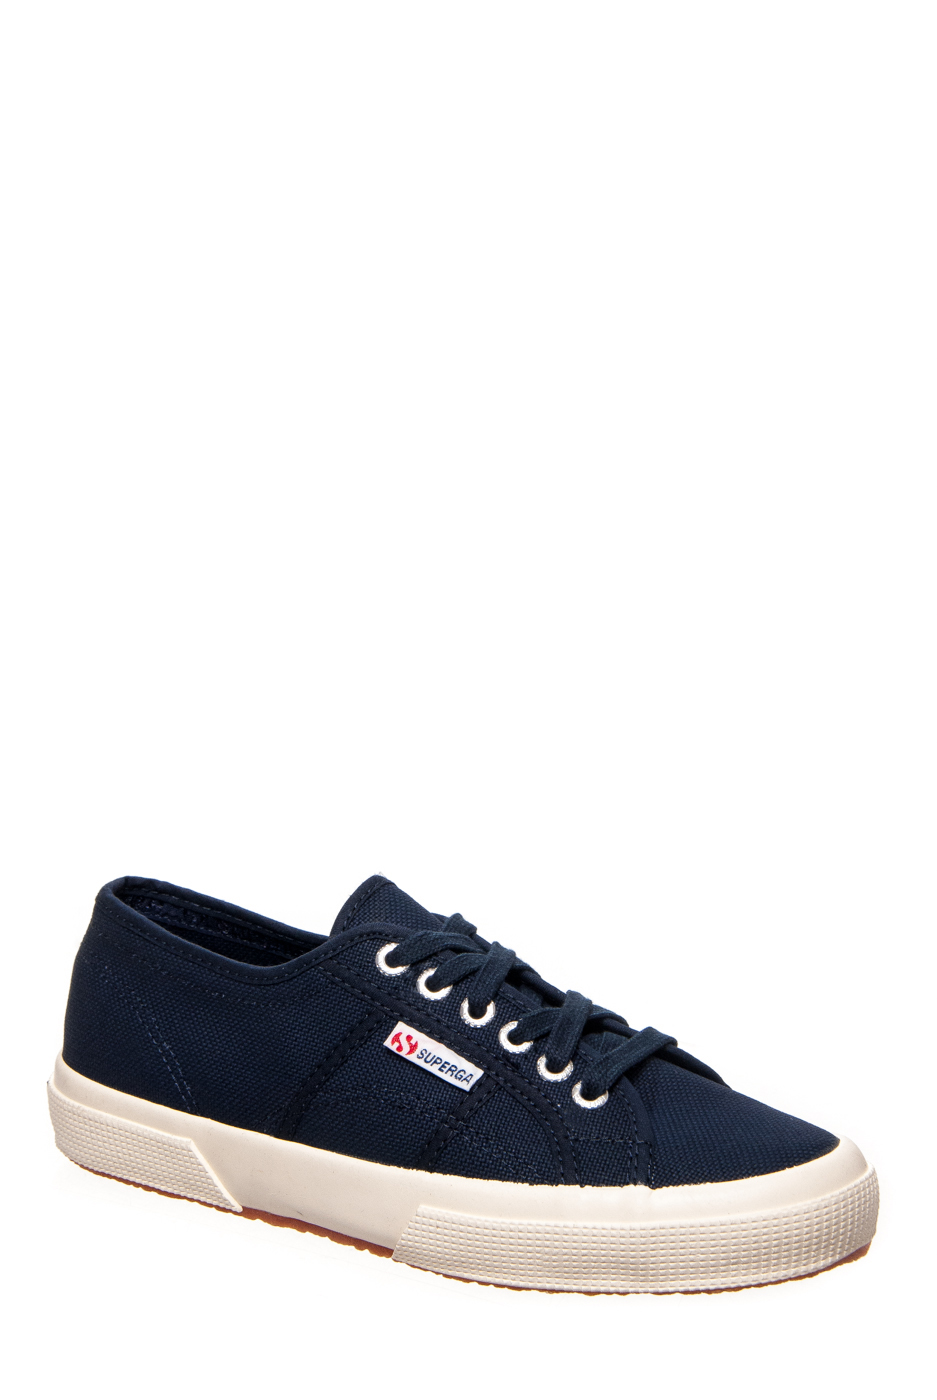 SUPERGA 2750 Cotu Classic Low Top Sneakers - Navy